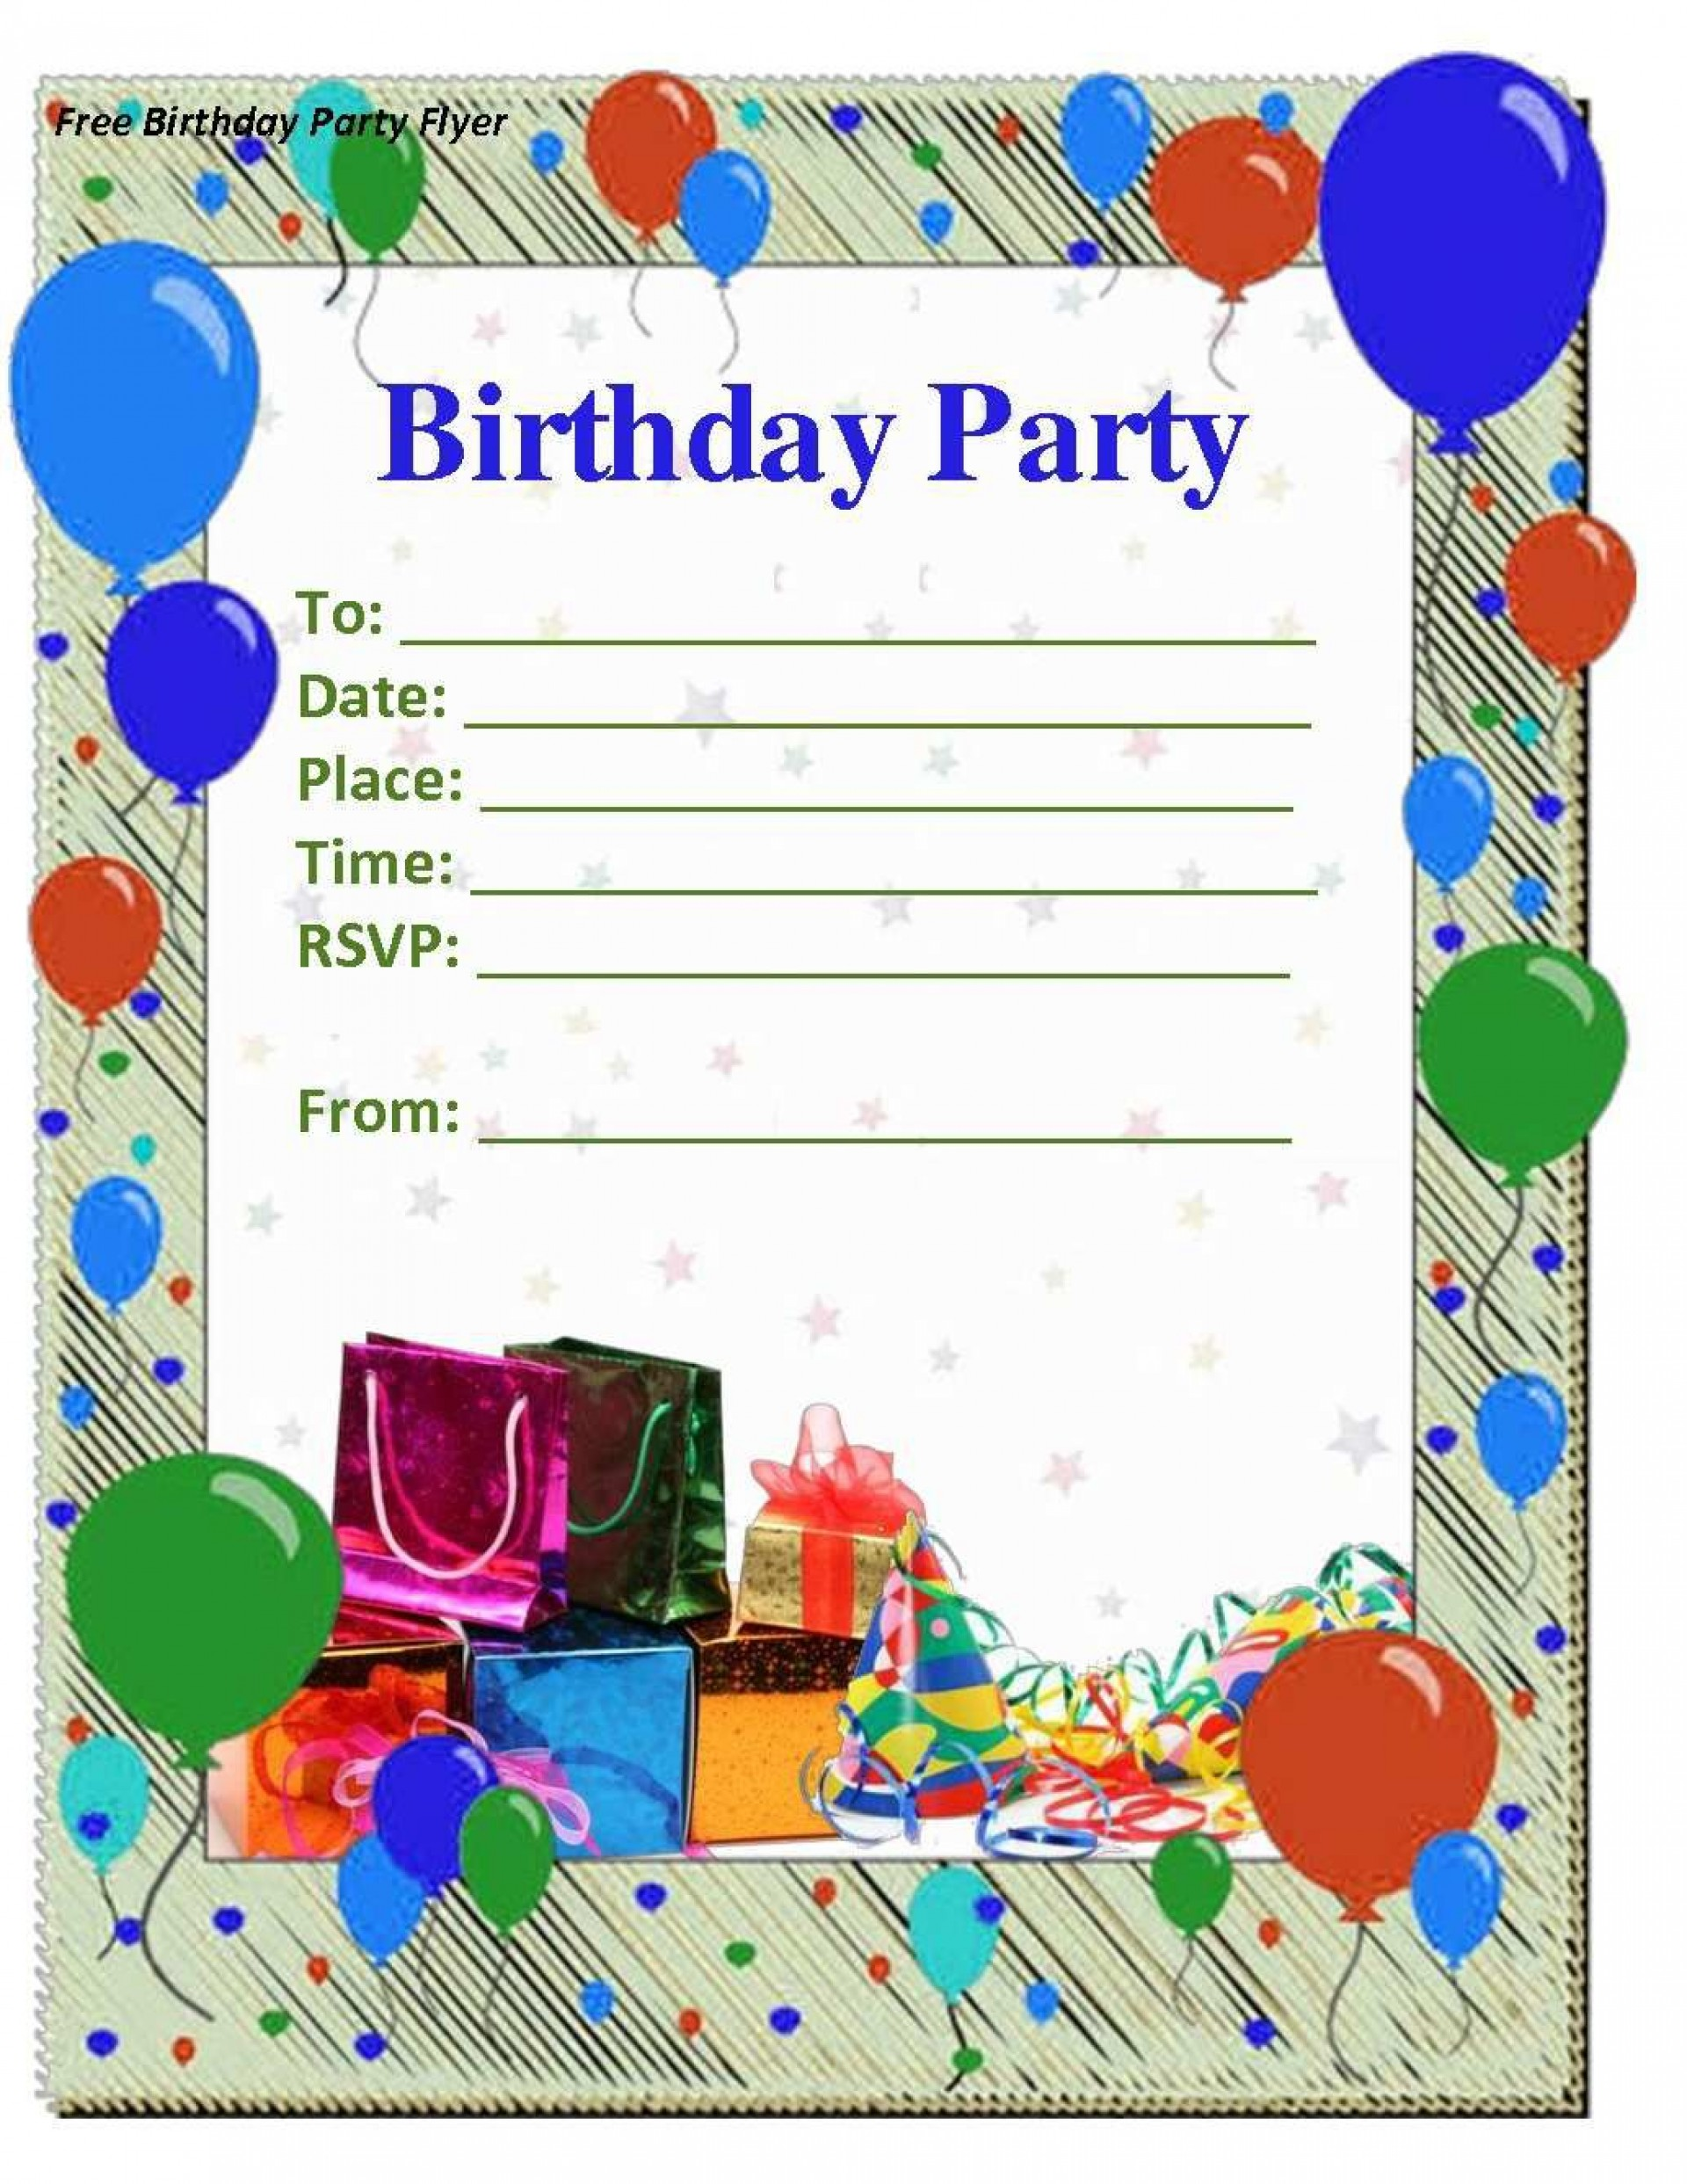 003 Formidable Birthday Invitation Card Word Format Photo  Template Free1920